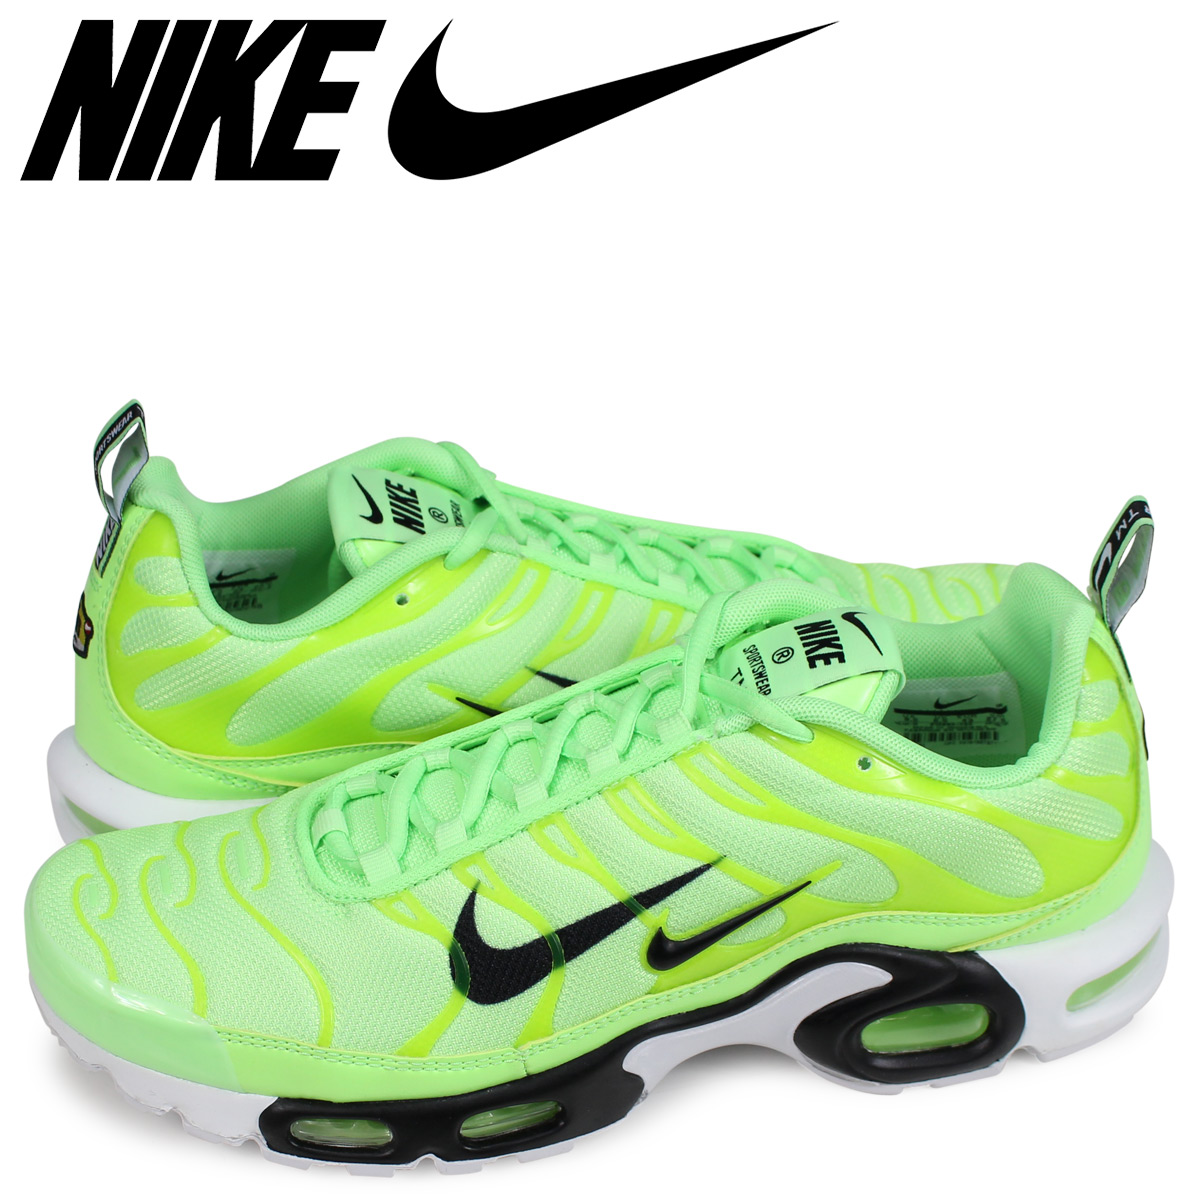 a21ea19af7 [brand NIKE getting high popularity from sneakers freak].